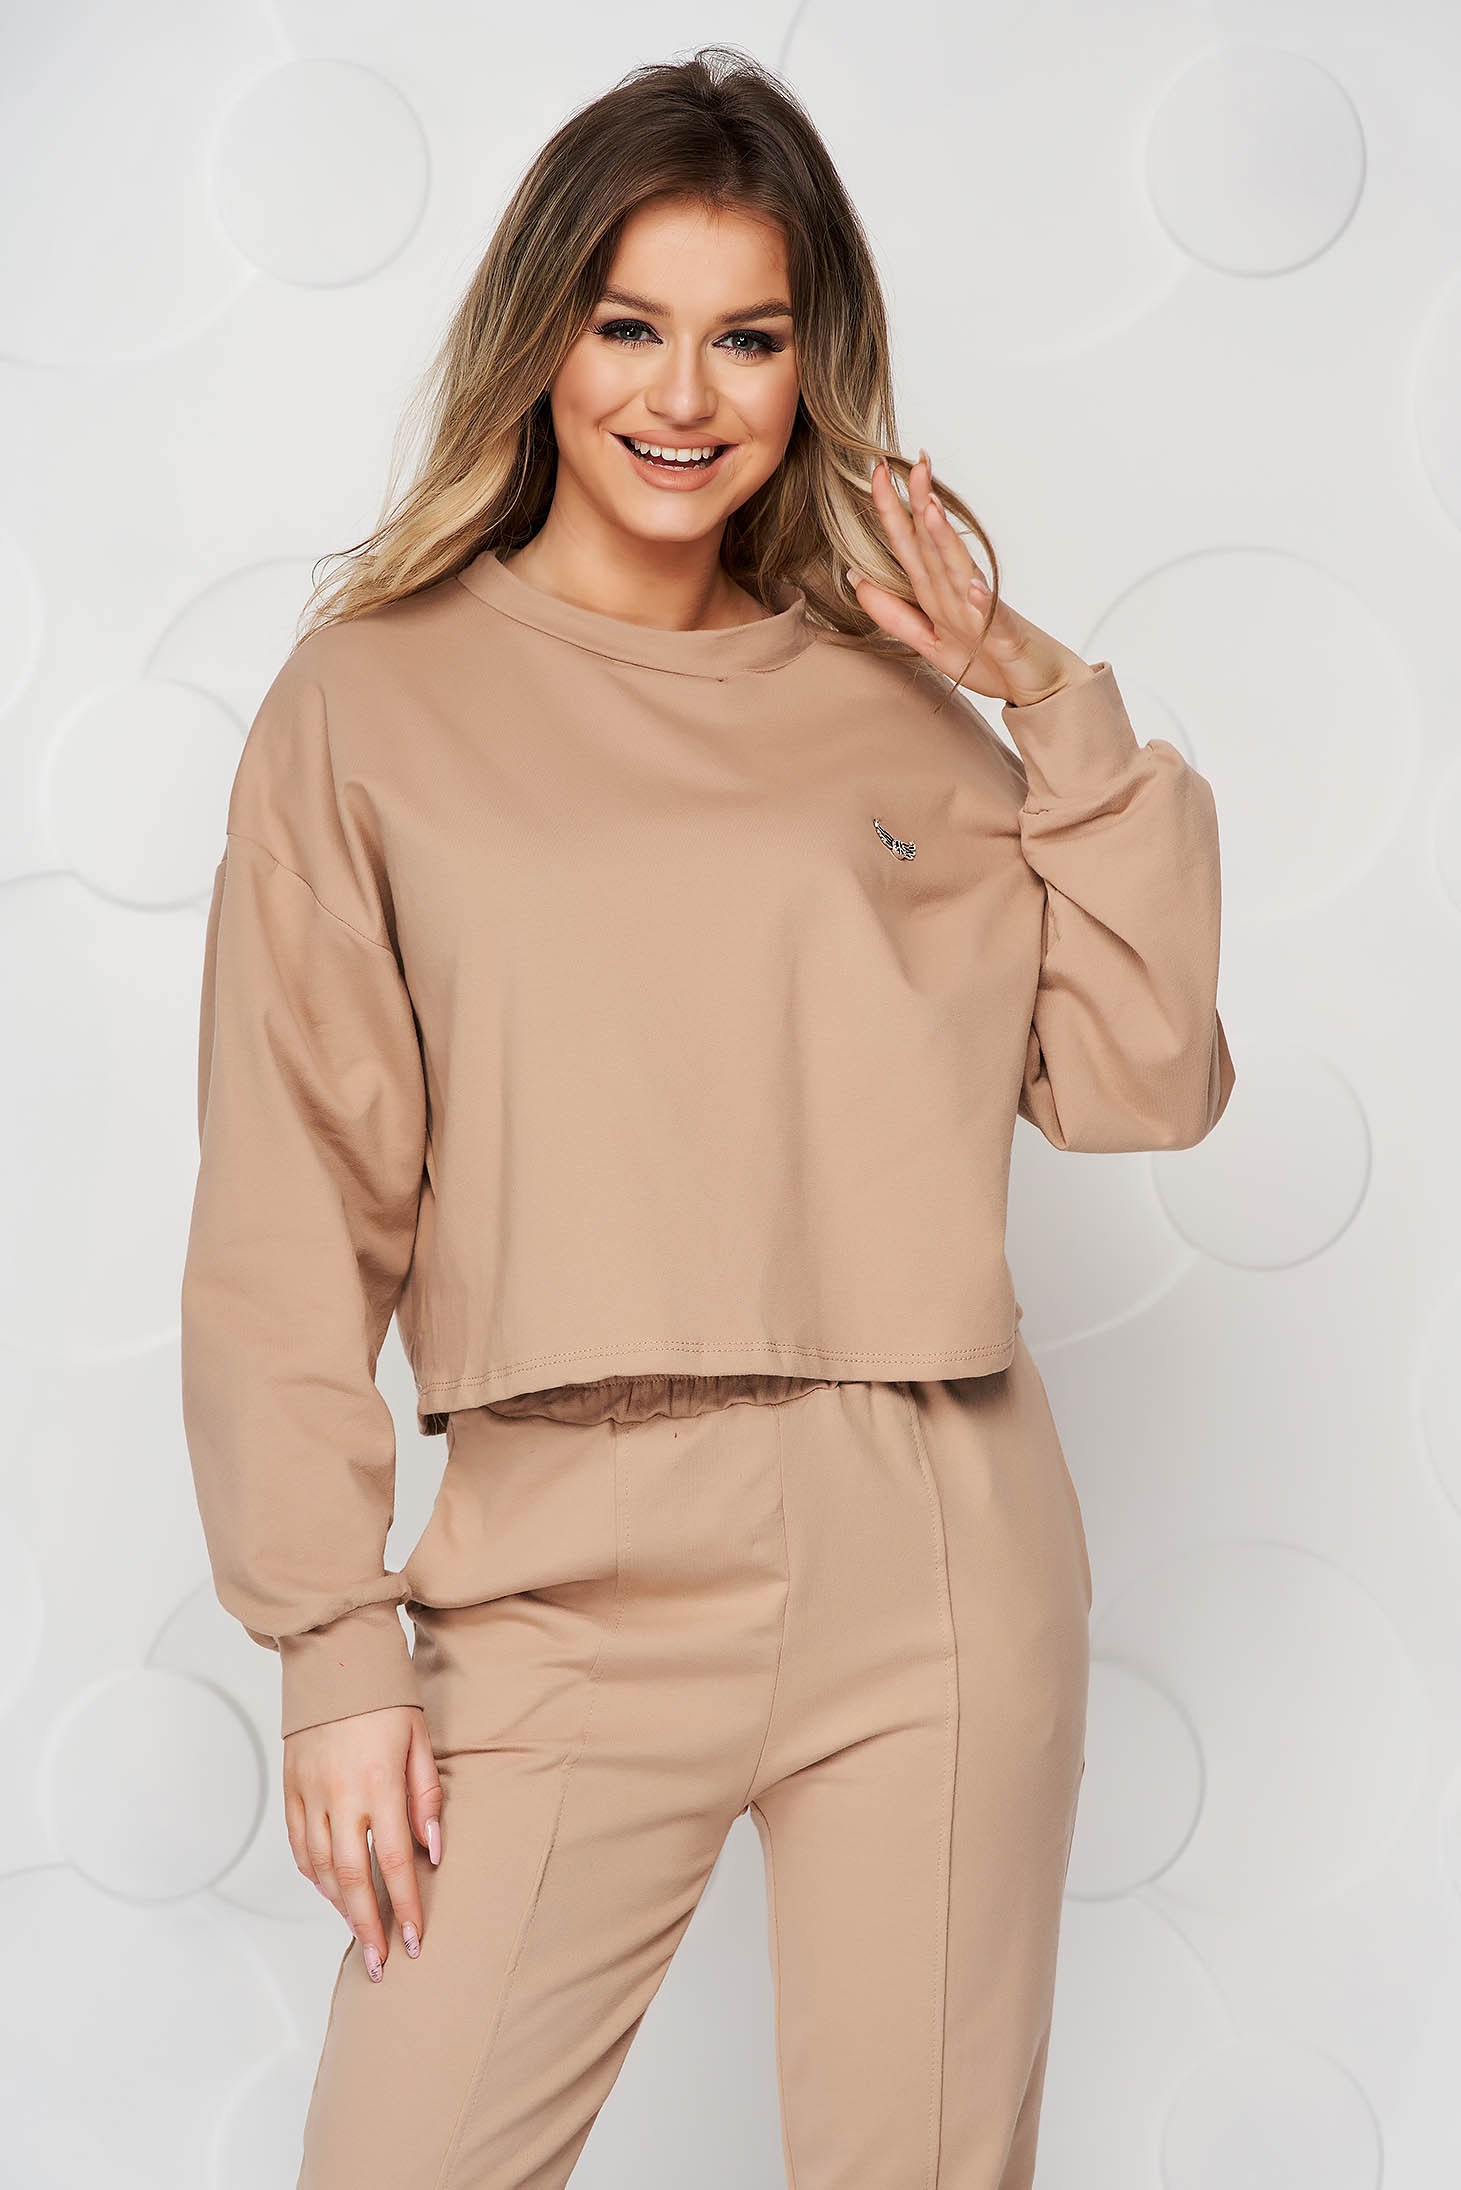 Cream sport 2 pieces cotton accessorized with breastpin loose fit